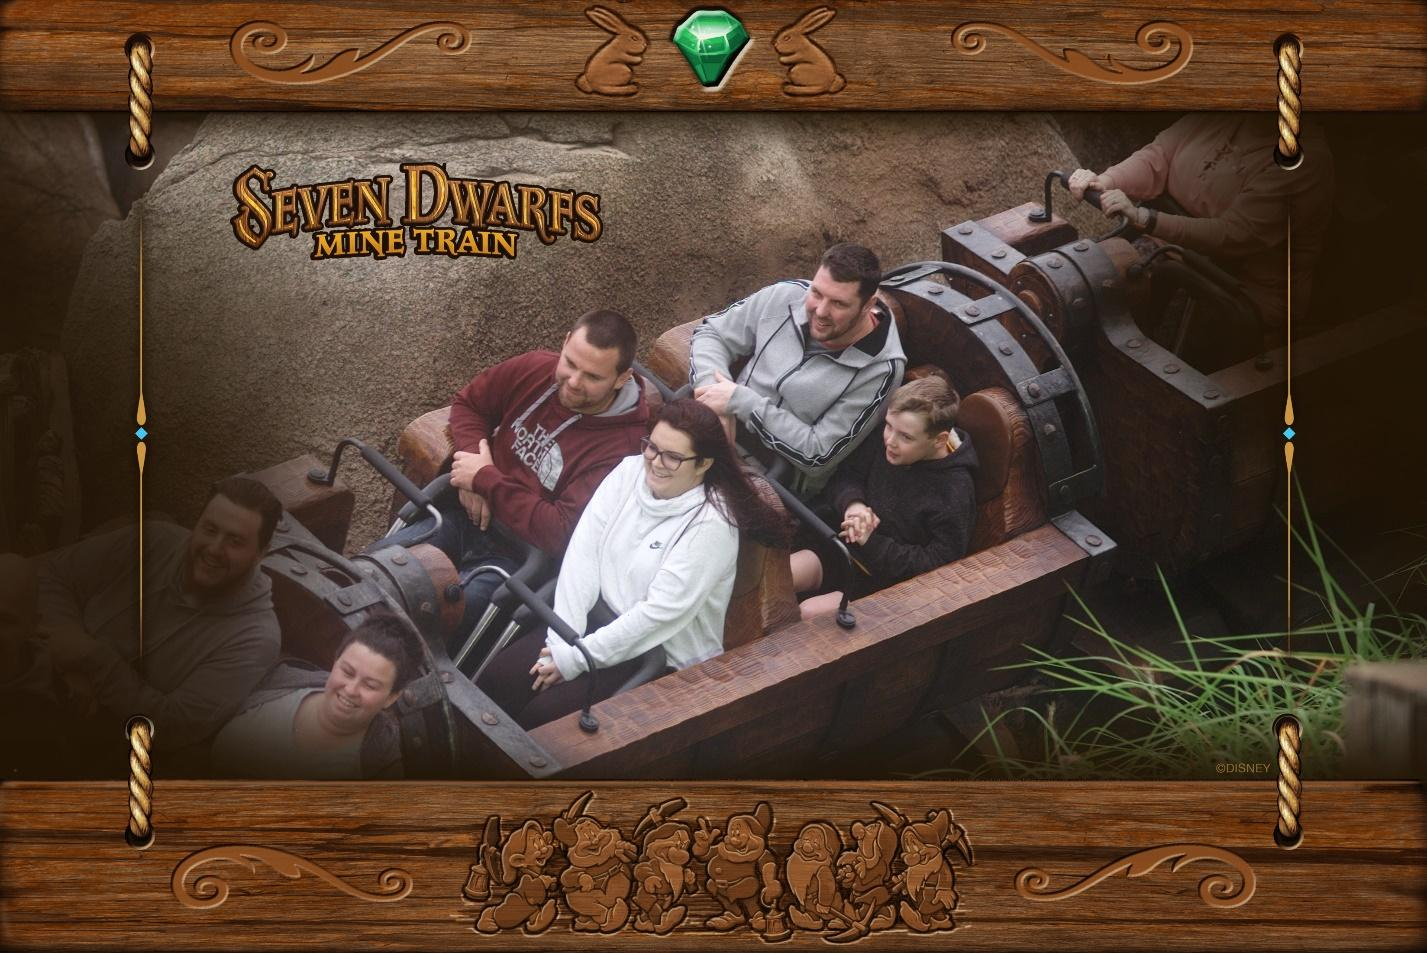 Disney's Memory Maker photo captures a family on the Seven Dwarfs Mine Train ride